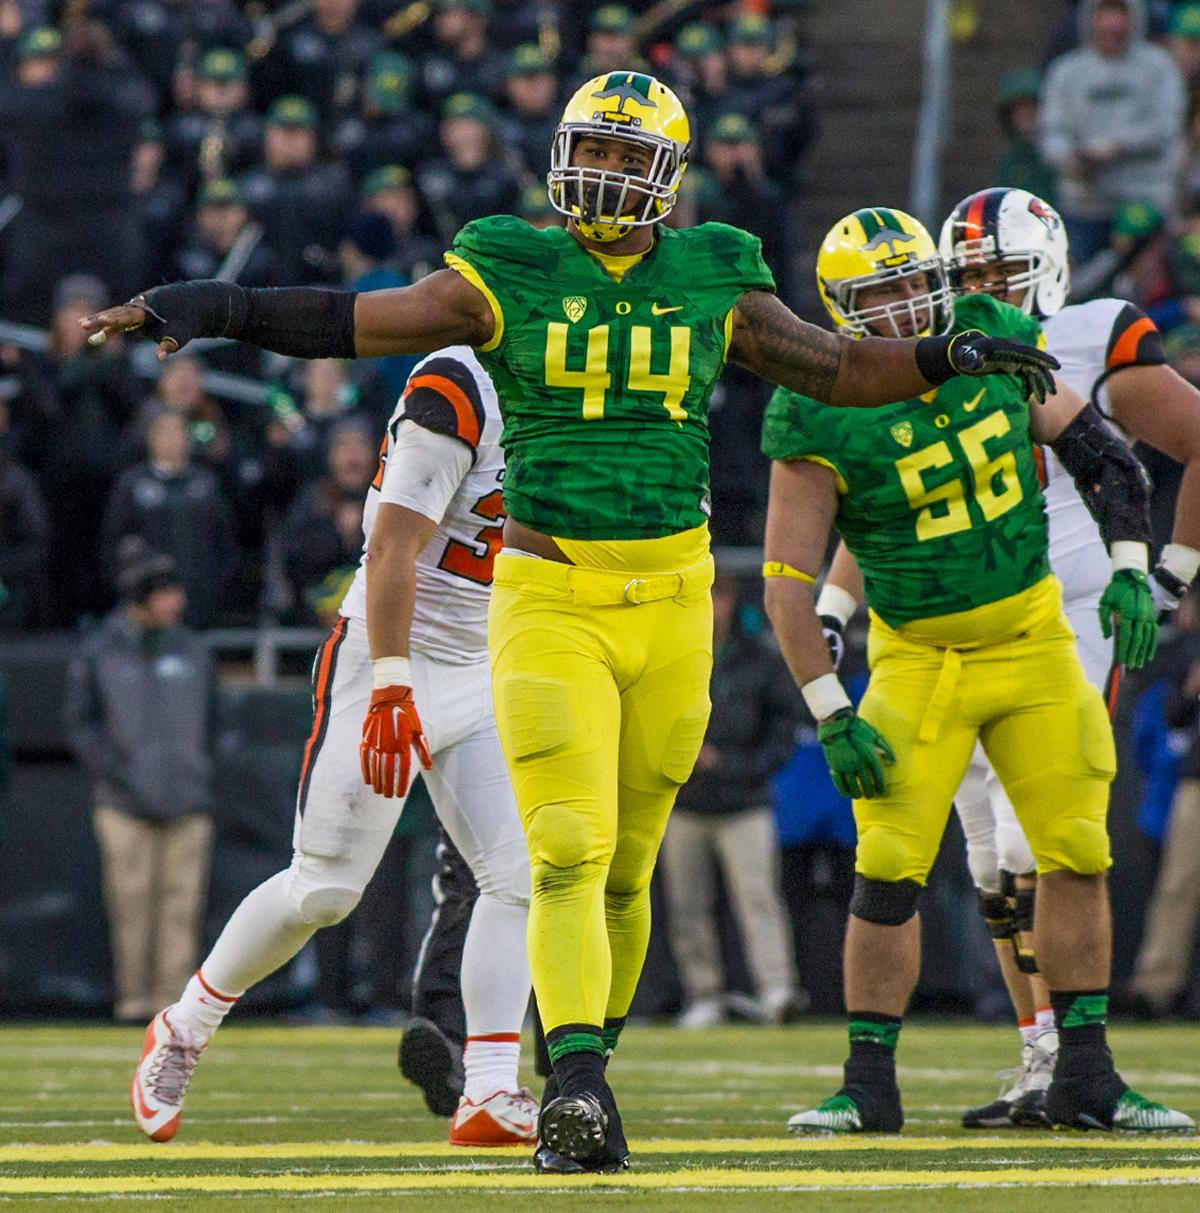 Oregon Ducks DeForest Buckner (#44) celebrates after sacking Oregon State Beavers quarterback Marcus McMaryion (#3). The Oregon Ducks beat the Oregon State Beavers 52-42 in the 119th Civil War for the eighth year in a row at Autzen Stadium on Friday afternoon. Katie Pietzold, Oregon News Lab